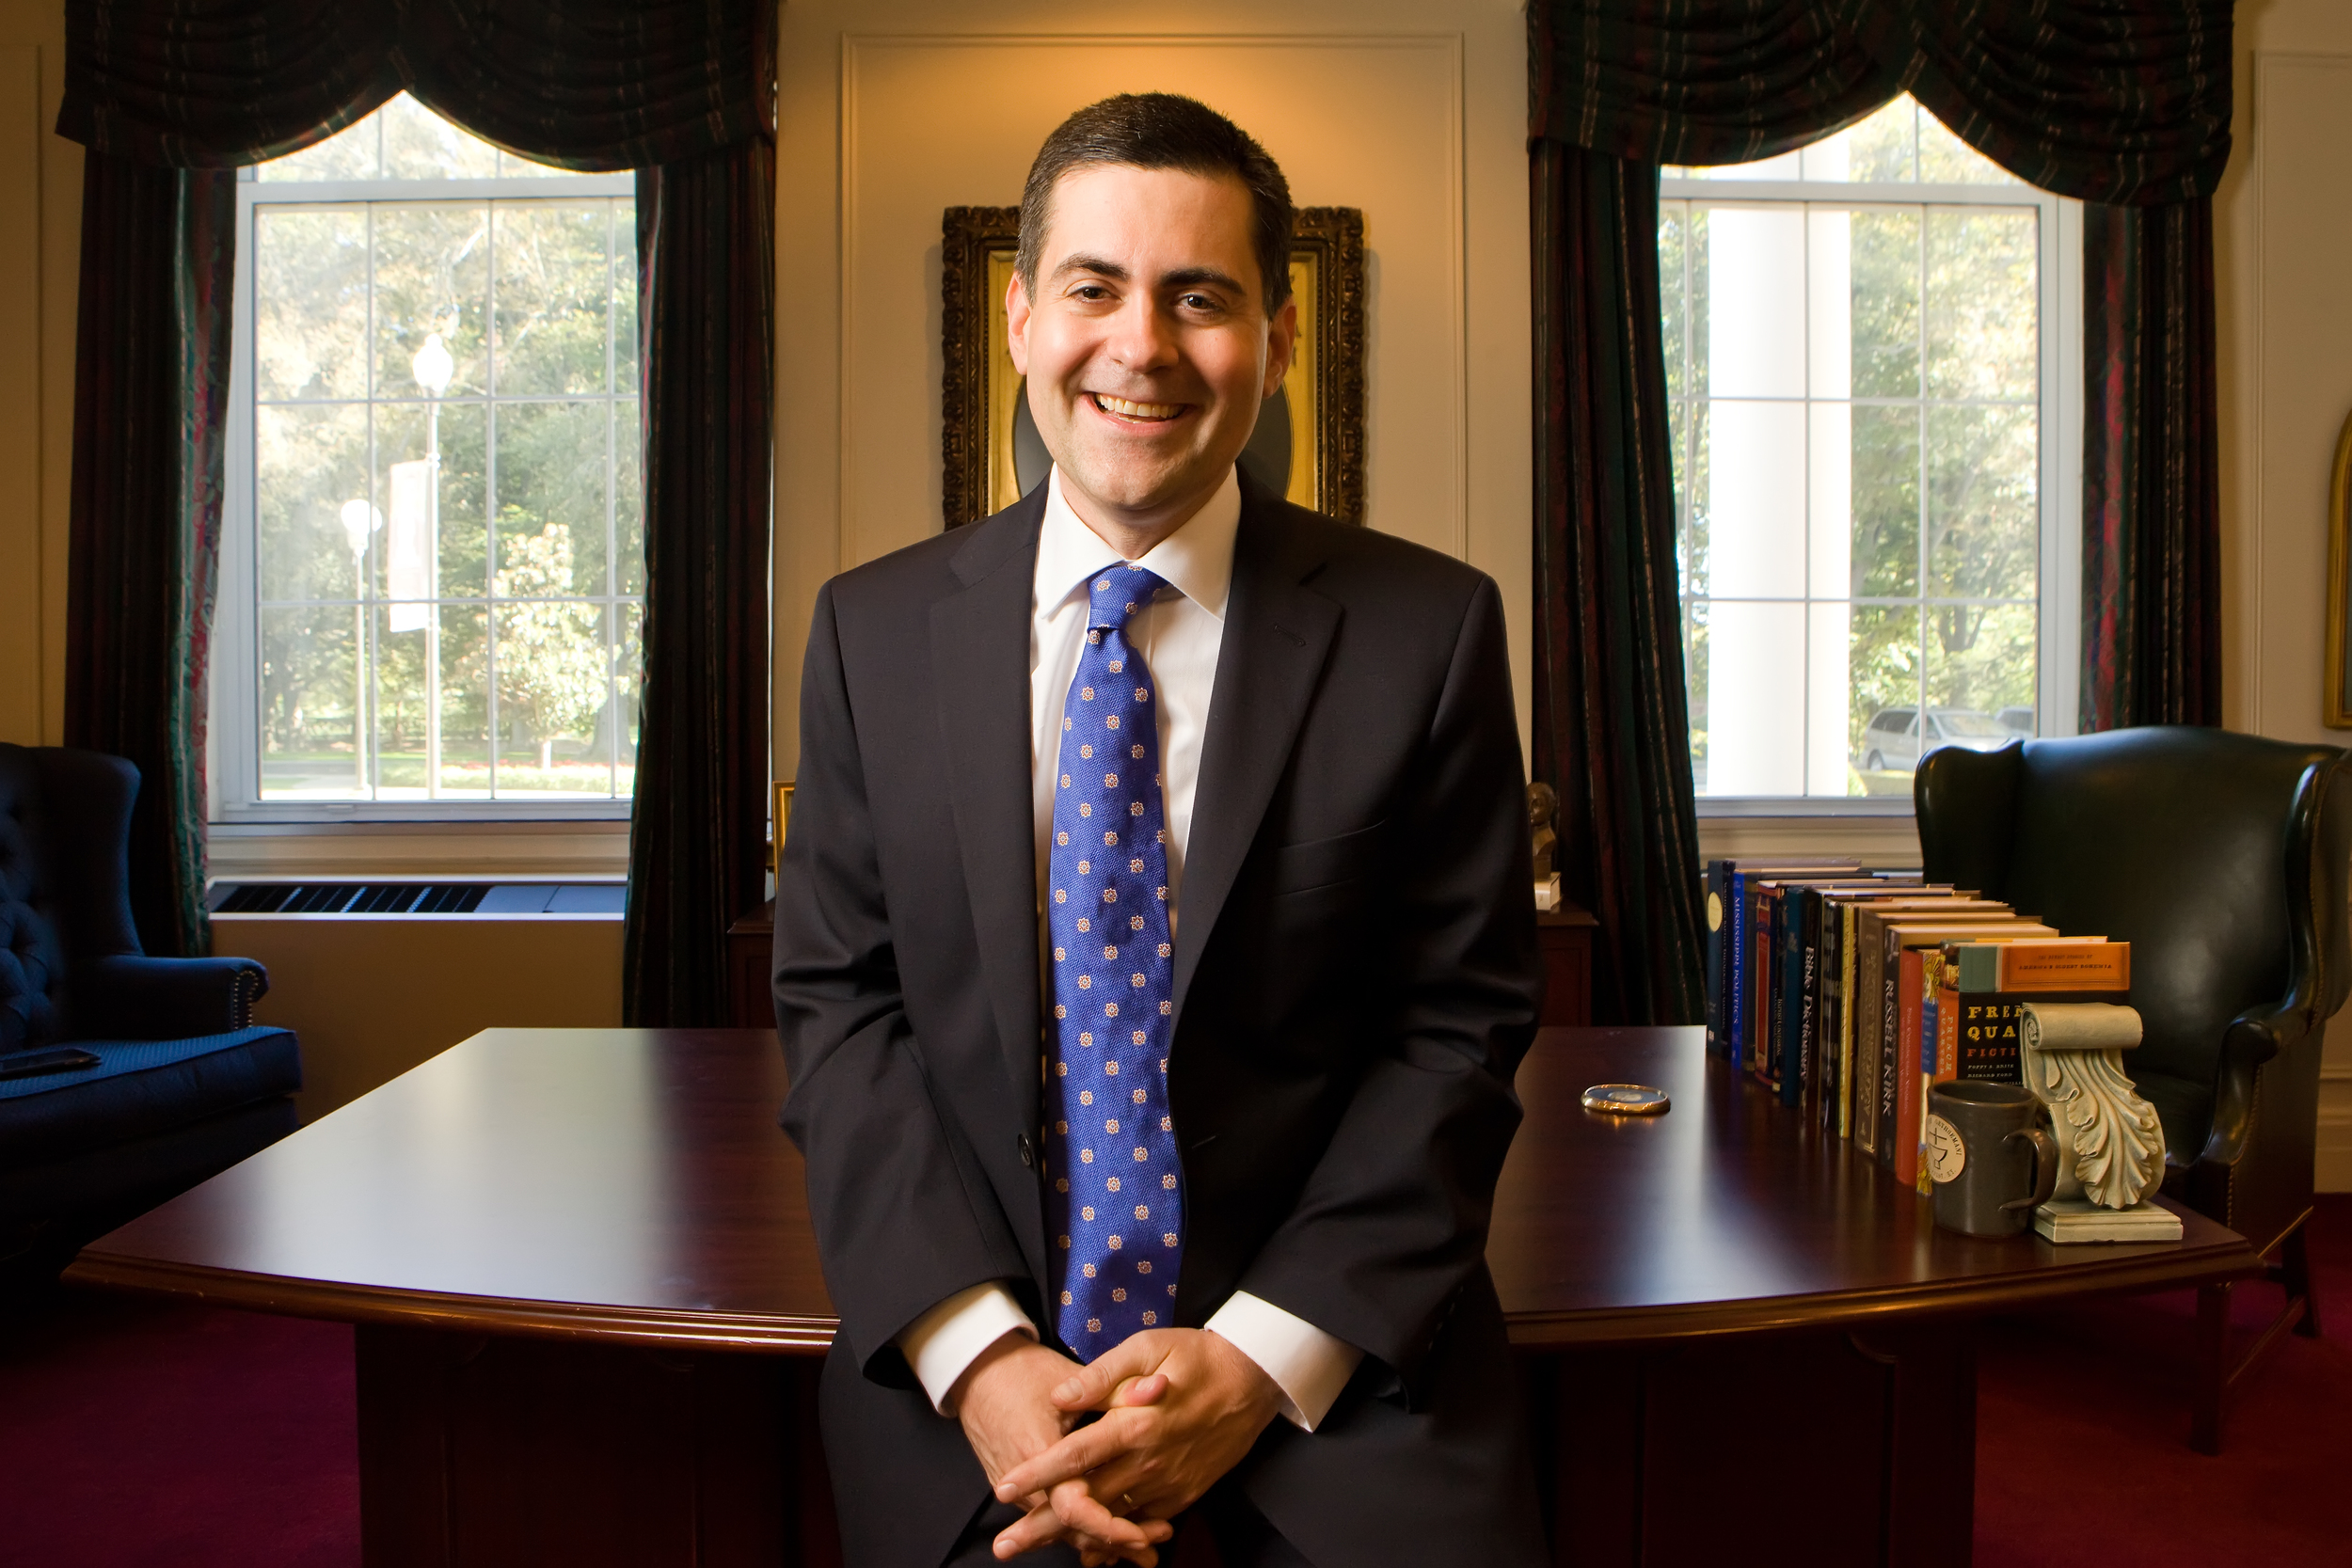 Russell Moore,   President of the Southern Baptist Ethics & Religious Liberty Commission